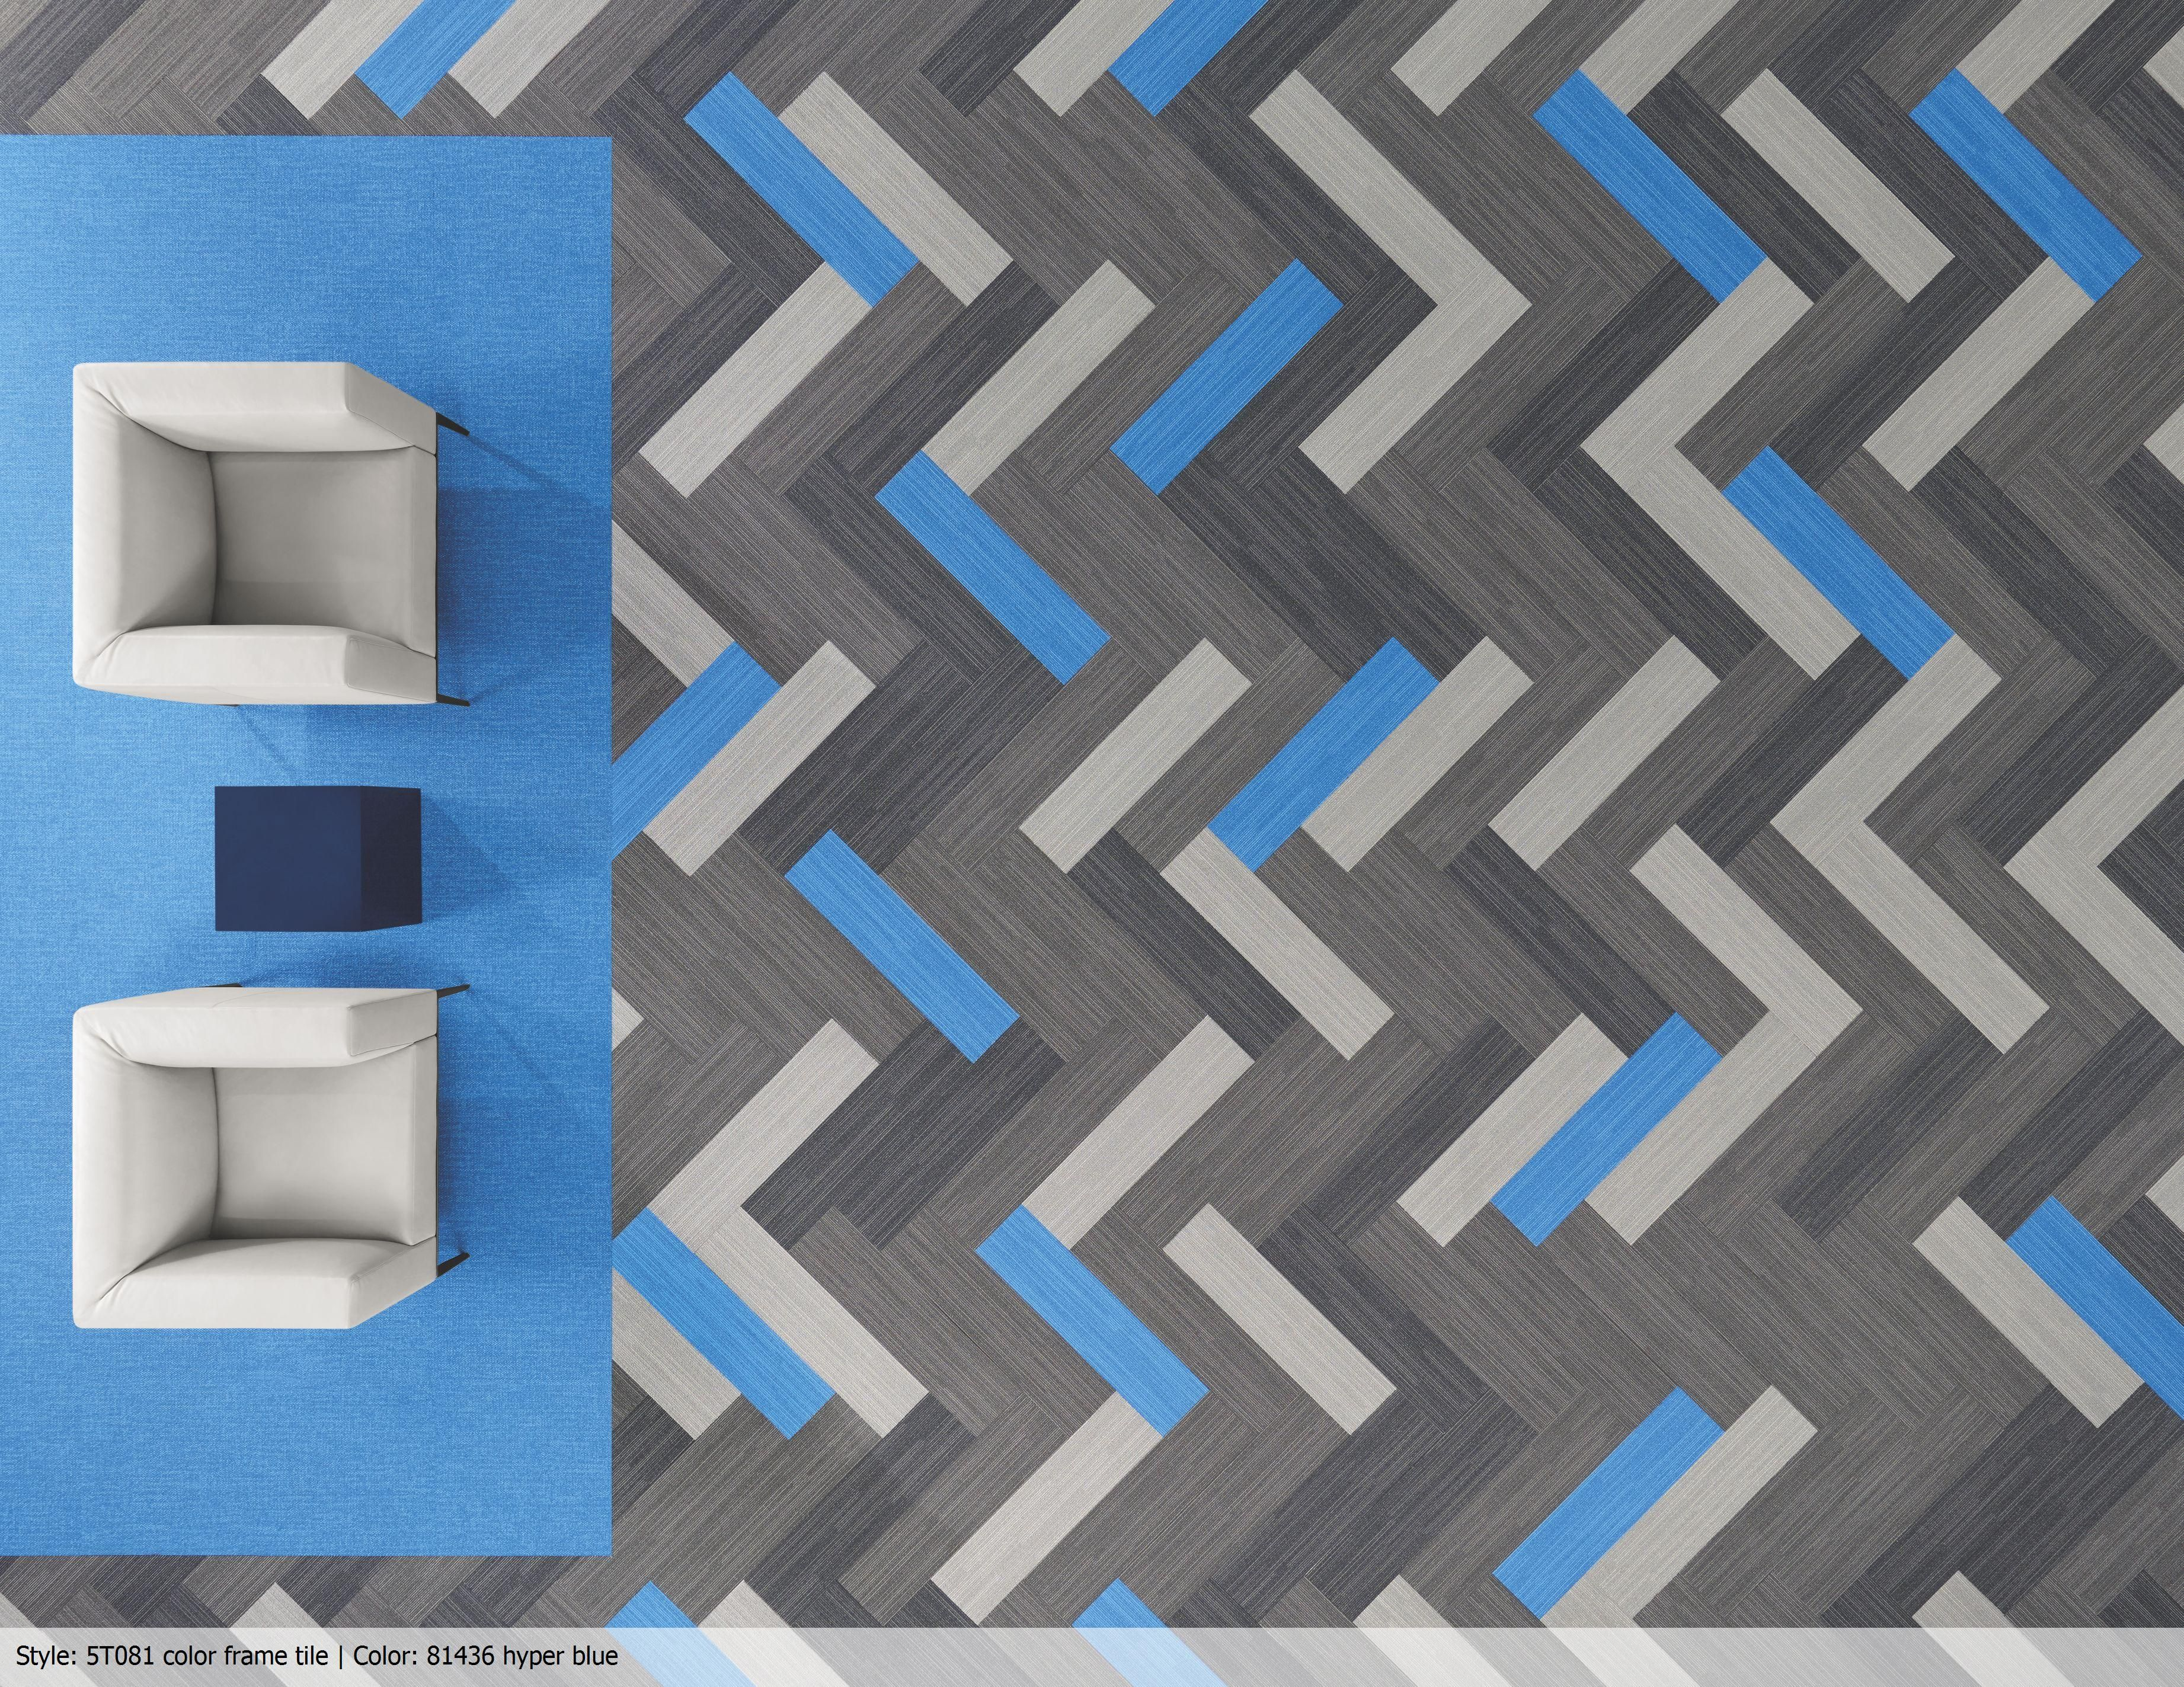 Colour frame tile in hyper blue colour form colour frame view the commercial carpet style color form tile from shaw contract view the carpet in a room scene order samples see specifications and more baanklon Choice Image